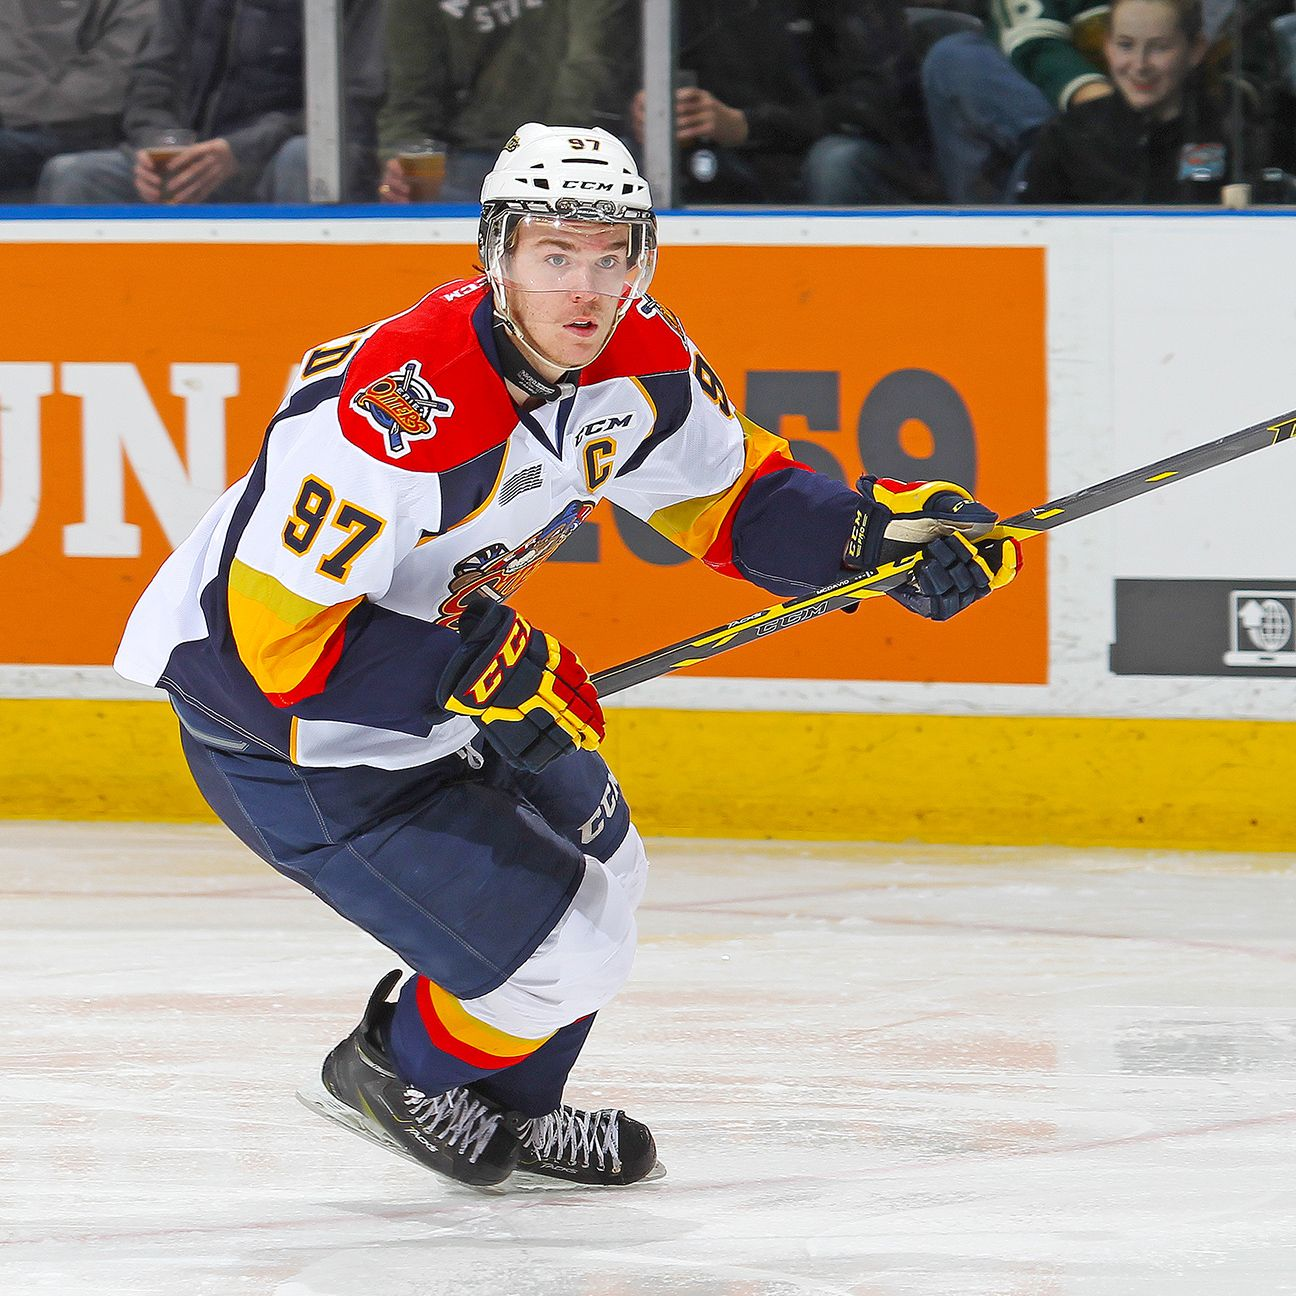 Connor McDavid Honored As Canadian Junior Hockey Player Of